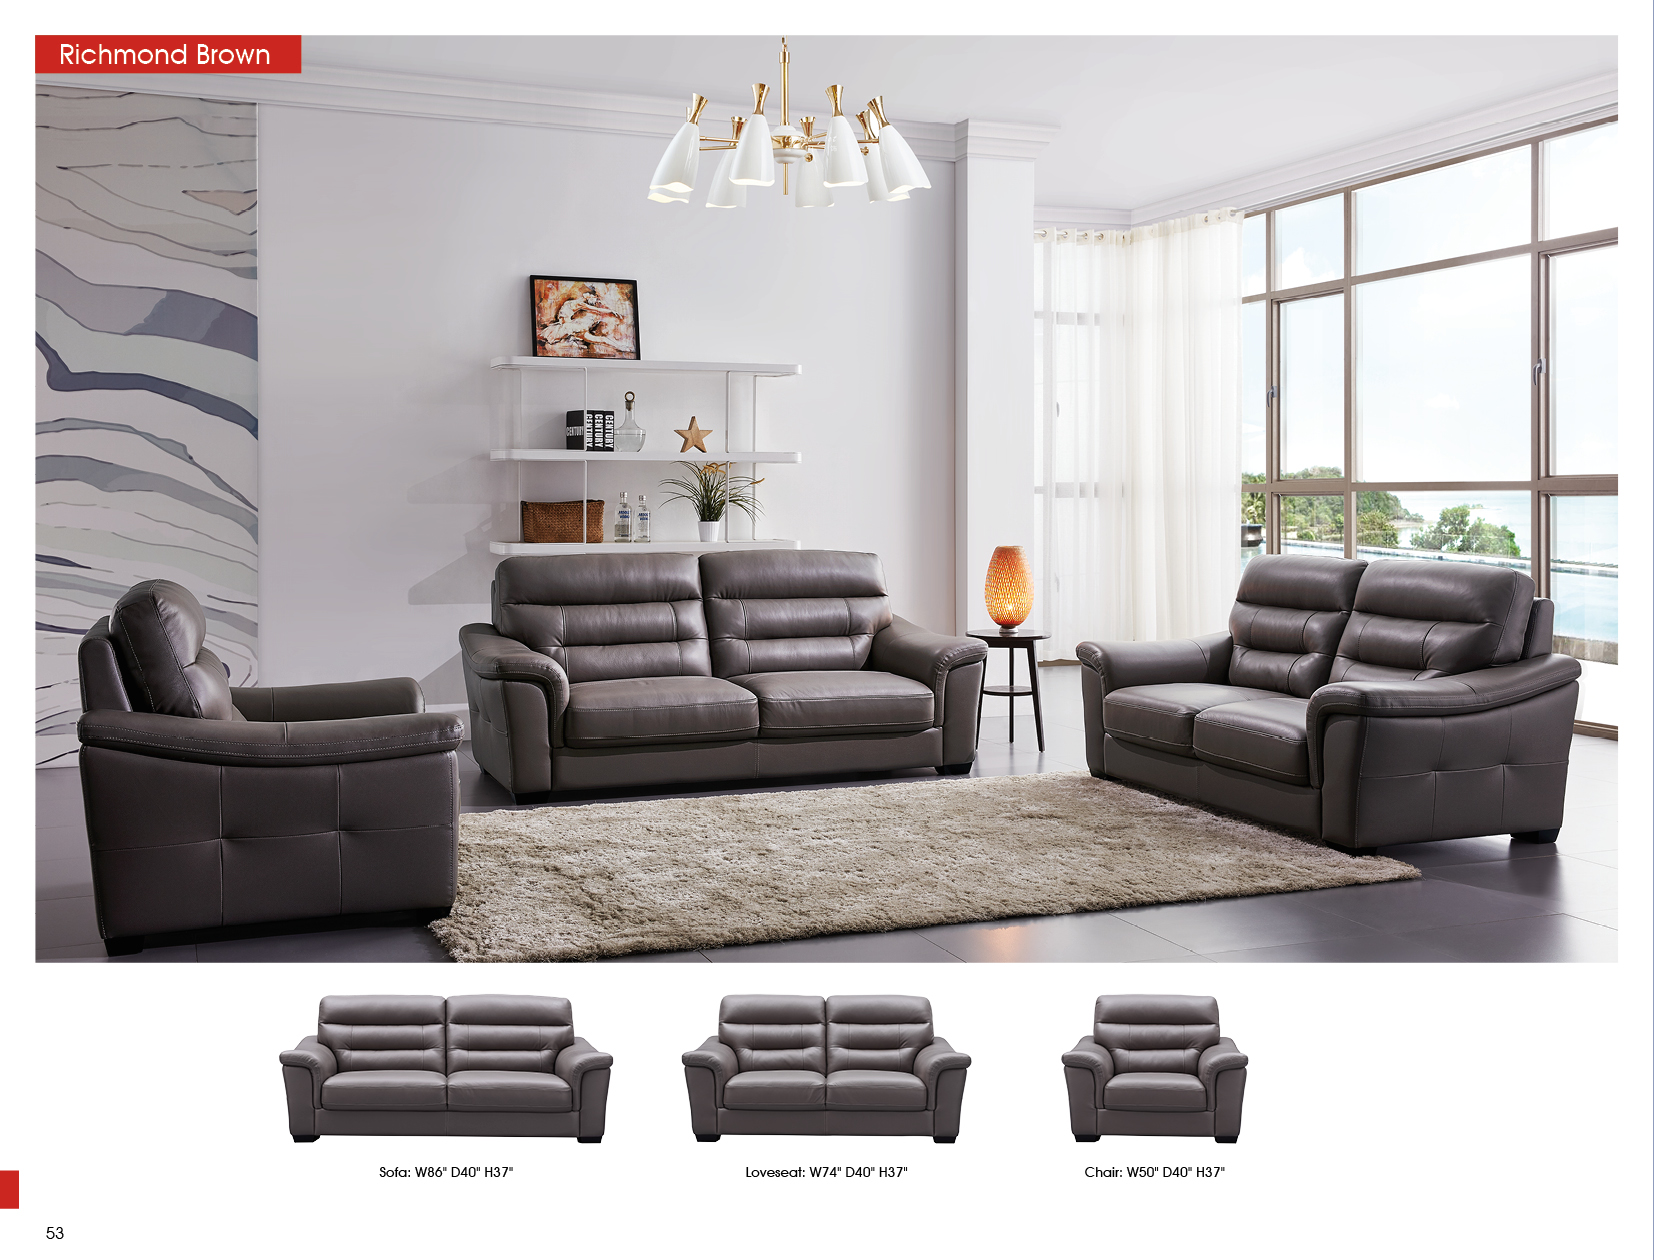 Richmond Brown, Sofas Loveseats and Chairs, Living Room Furniture